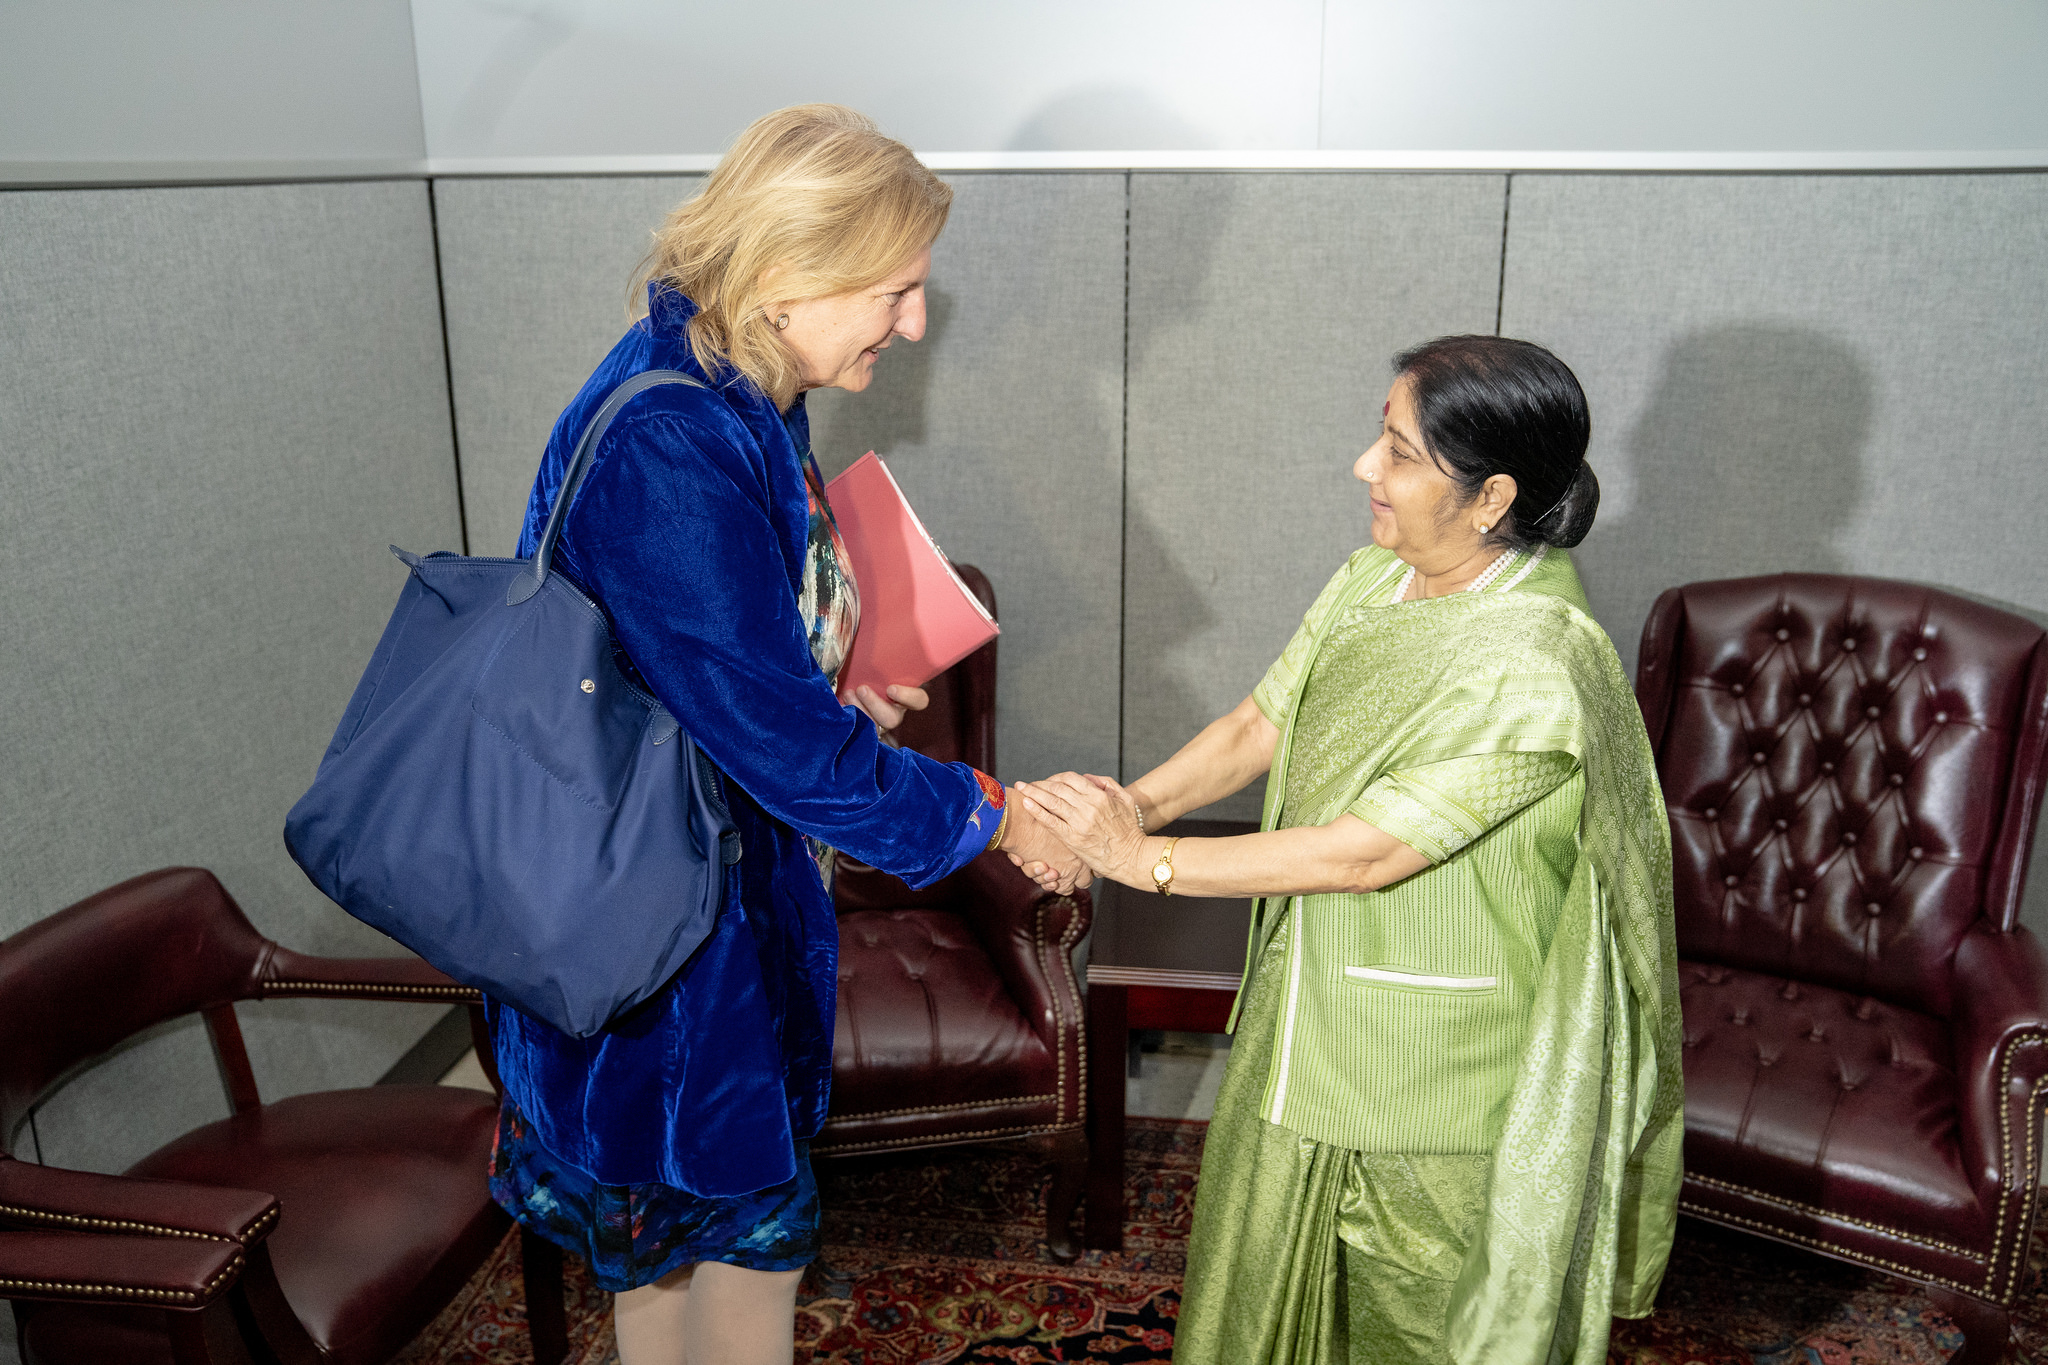 Foreign Minister Karin Kneissl in a bilateral meeting with her counterpart, Indian Foreign Minister, Sushma Swaraj (c) Austrian Ministry of Foreign Affairs